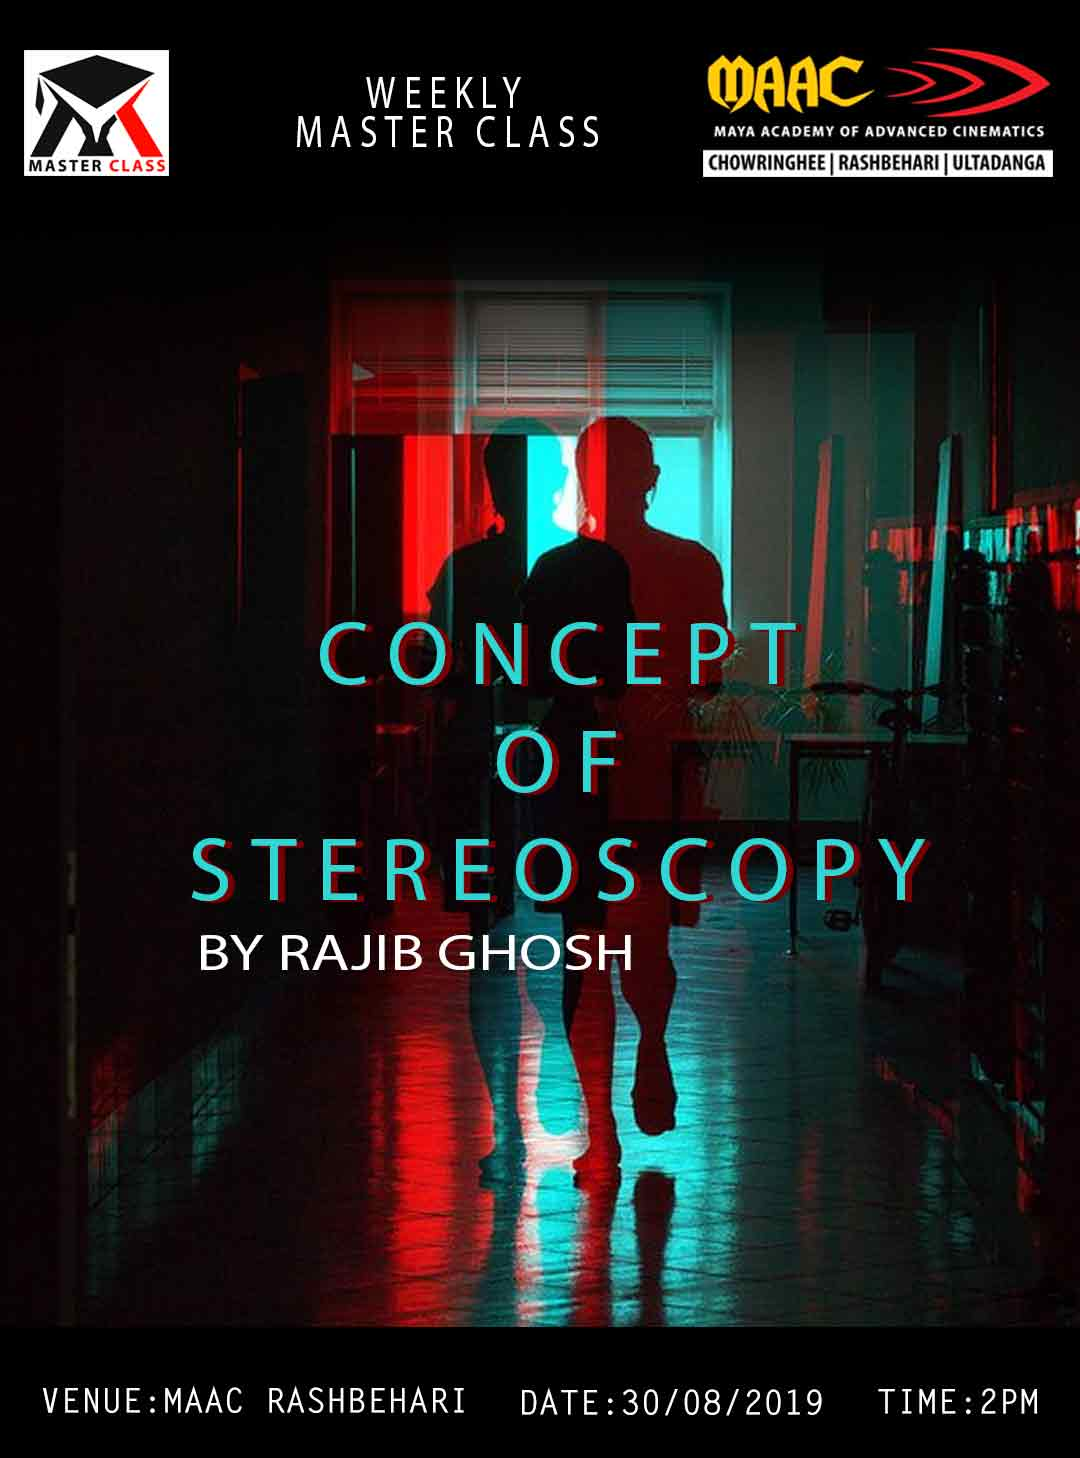 Weekly Master Class on Concept Of Stereoscopy